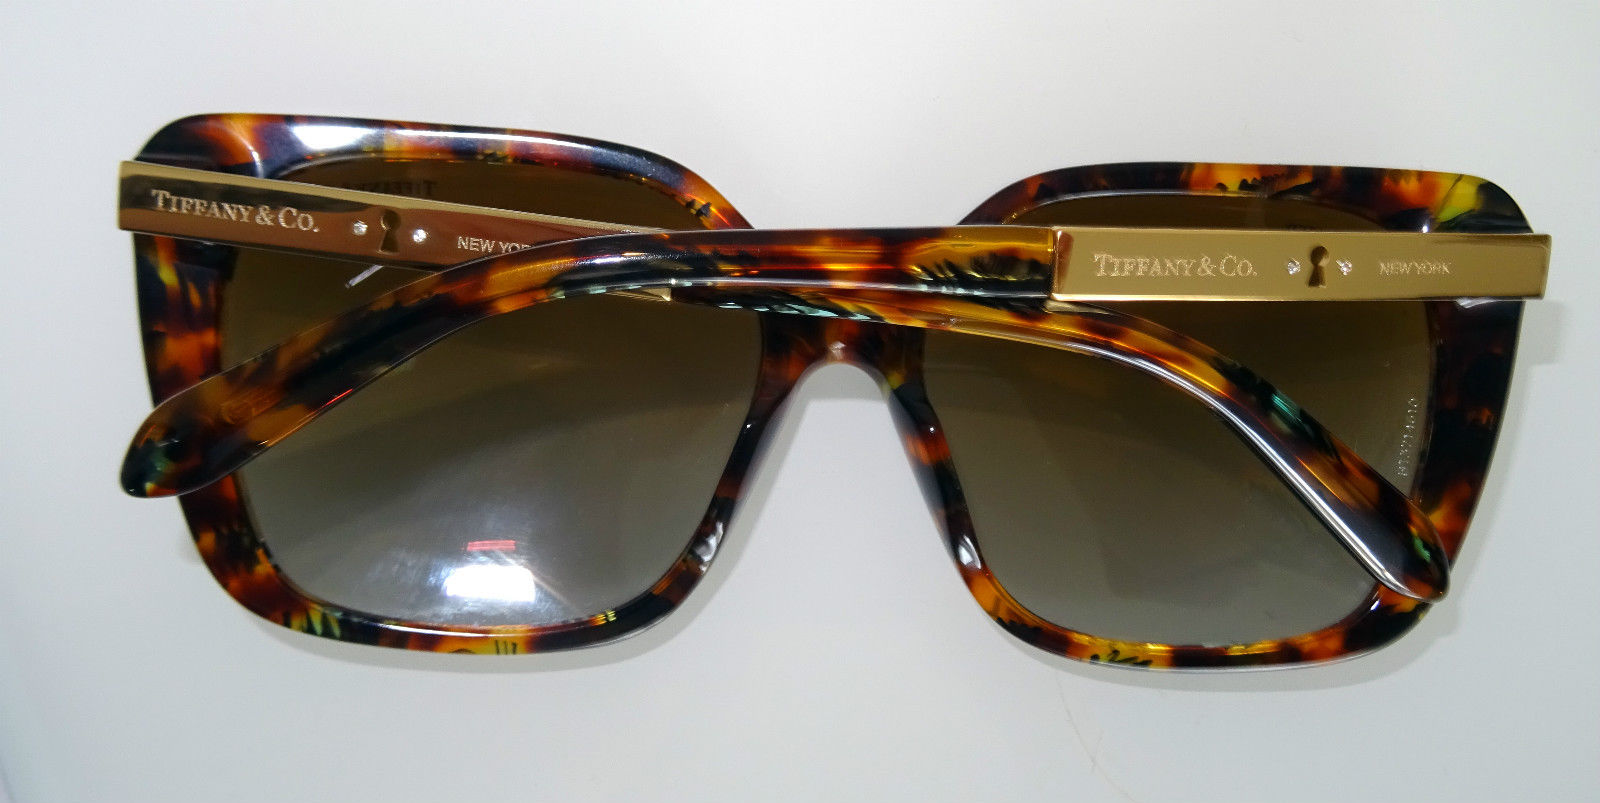 8c52c00439b Tiffany   Co. 4074 Brown Tortoiseshell Polarised Sunglasses. 22. 123456789